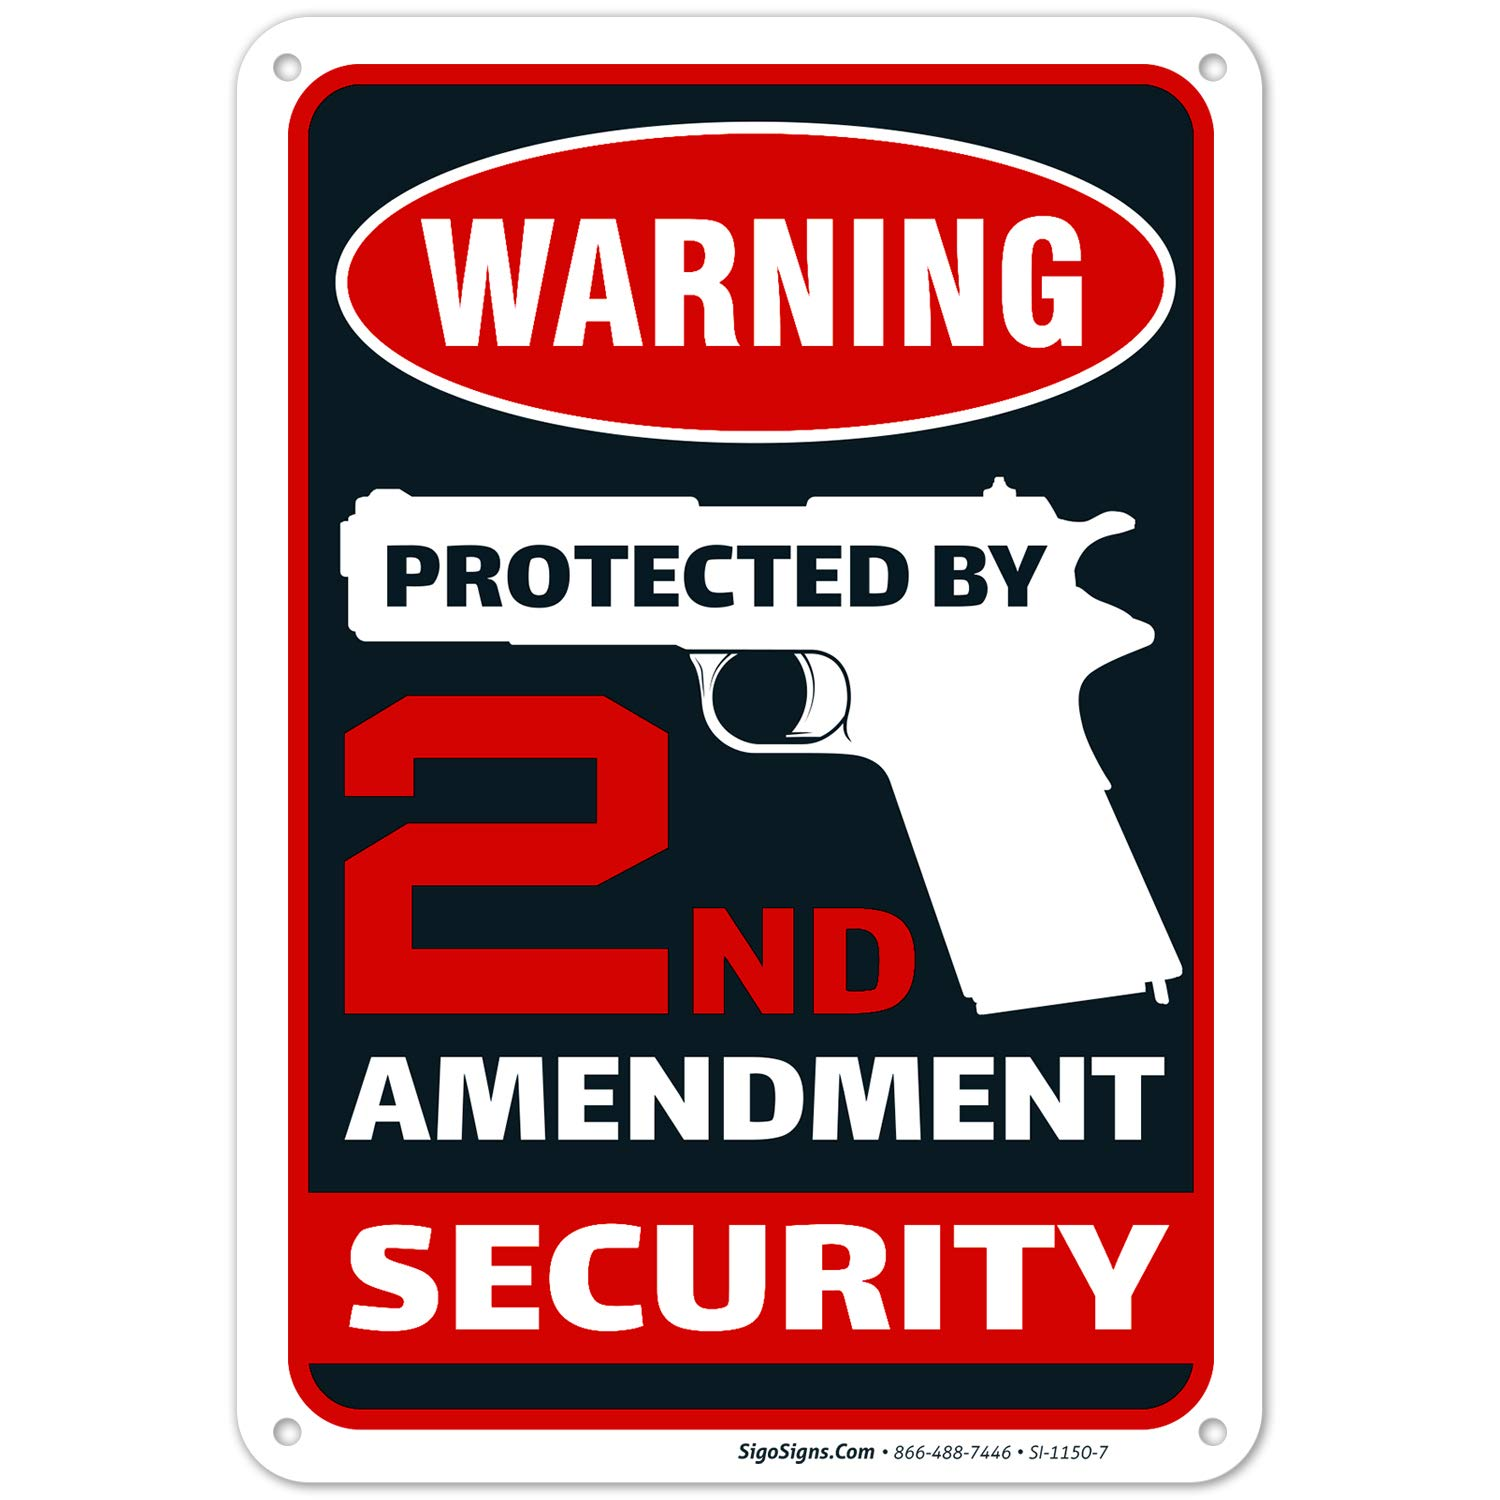 2nd Amendment, Protected by 2nd Amendment Sign, 10x7 Rust Free Aluminum,Weather/Fade Resistant, Easy Mounting, Indoor/Outdoor Use, Made in USA by SIGO SIGNS